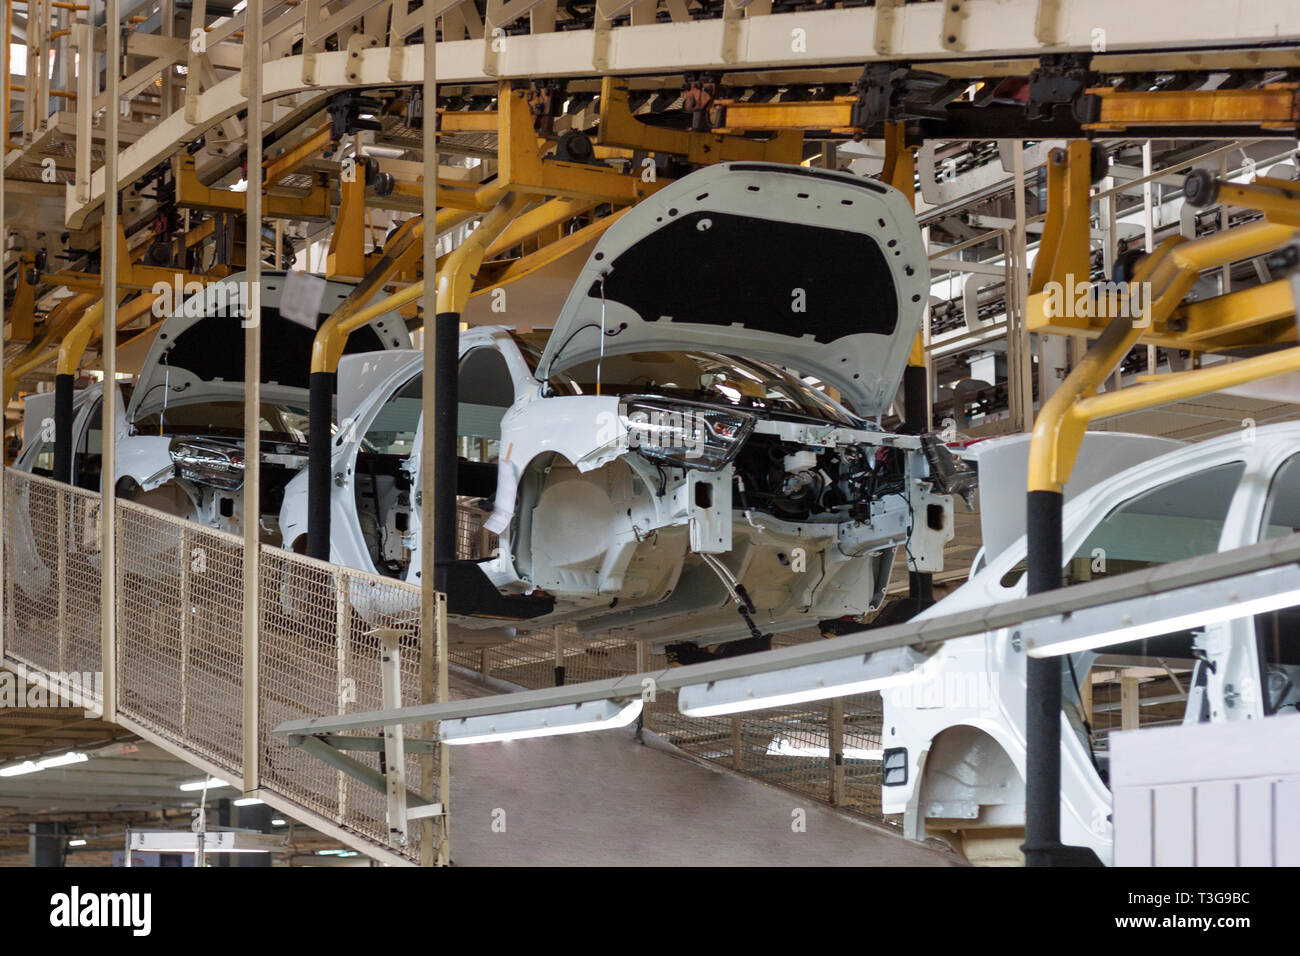 Russia, Izhevsk - December 15, 2018: LADA Automobile Plant Izhevsk. The bodies of new cars after painting on the conveyor line. - Stock Image